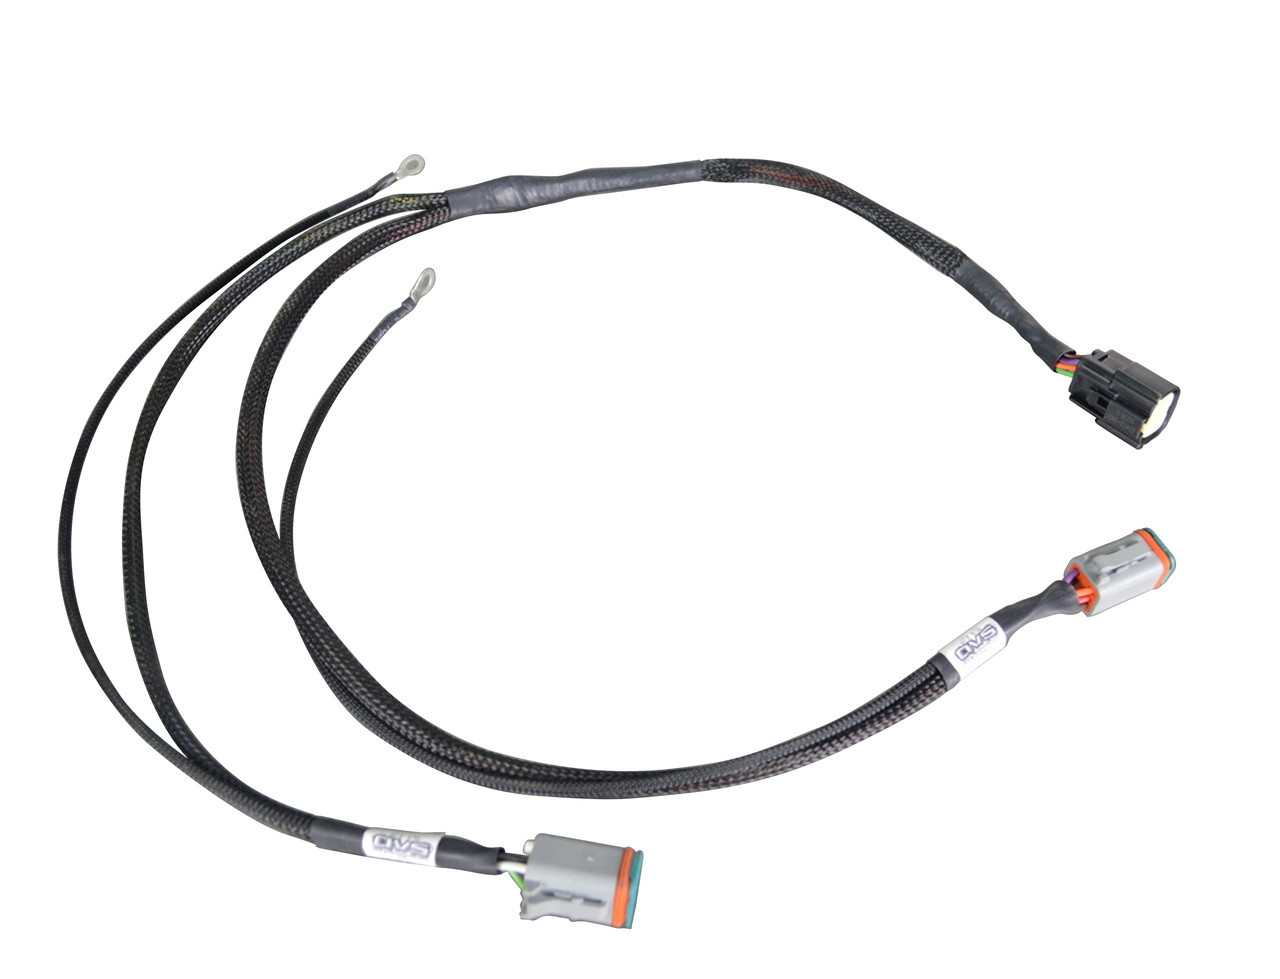 hight resolution of avs valve wiring harness for accuair endo vt tank to e level switchspeed